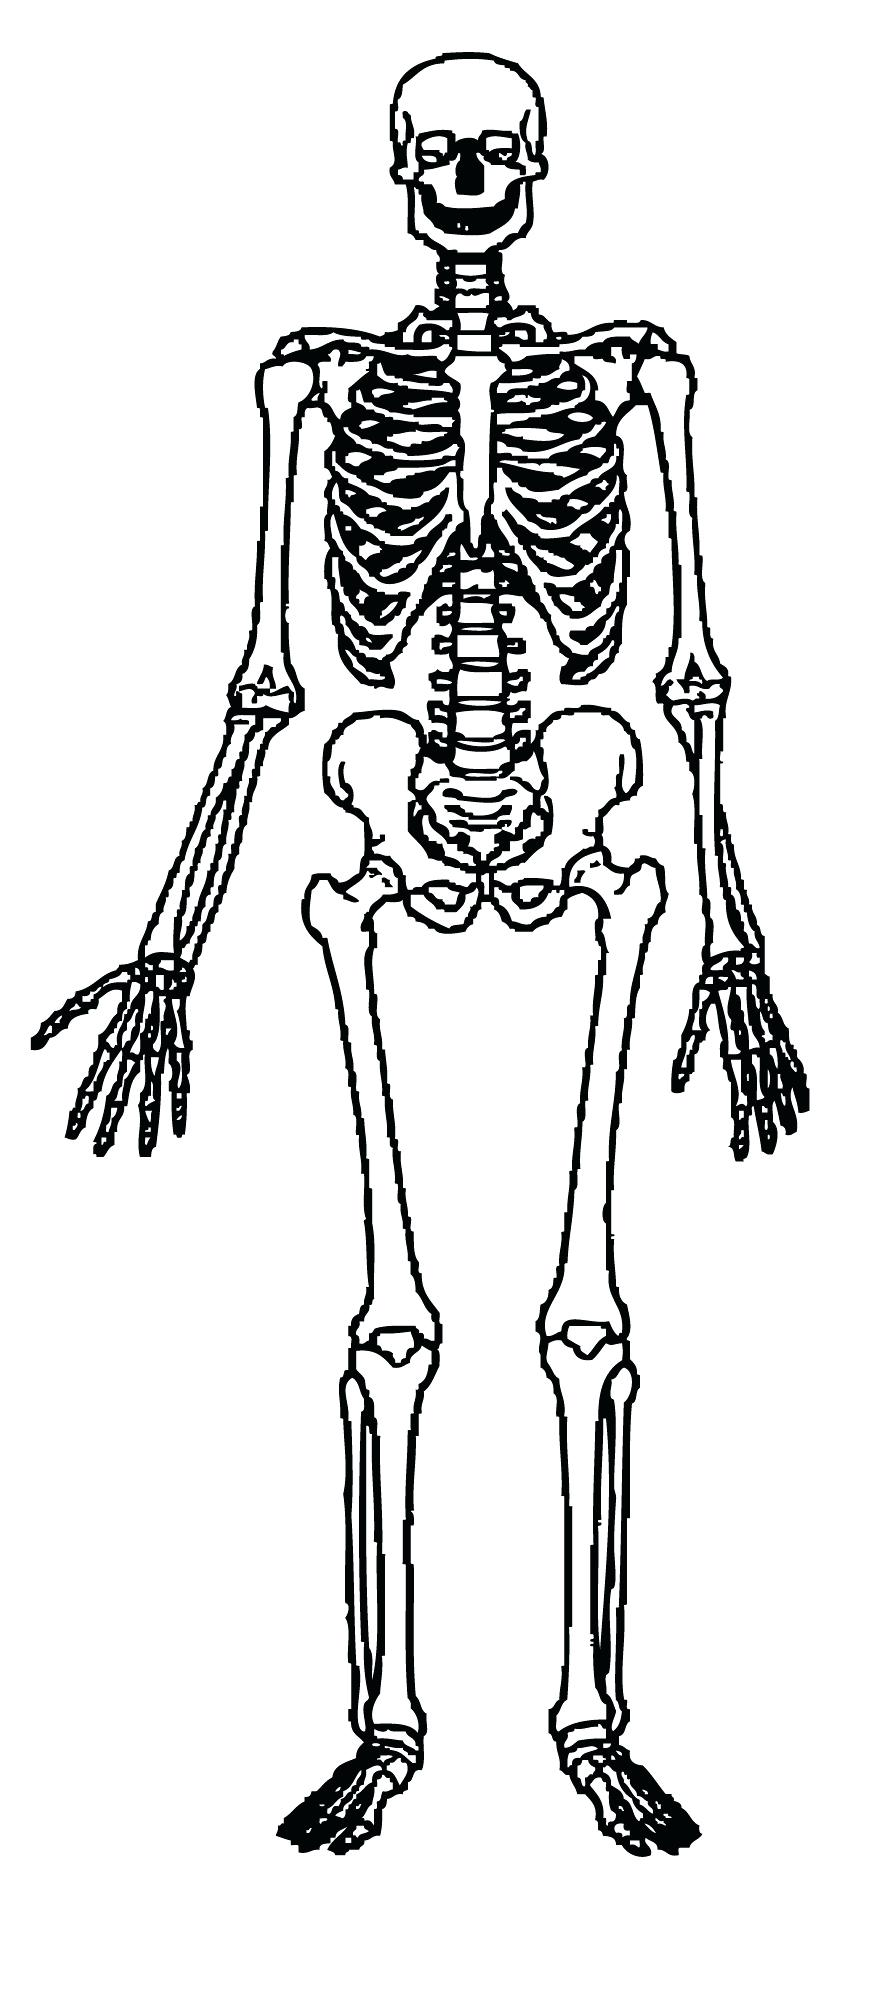 884x1995 Diagram Human Skeleton Diagram Labeled For Kids